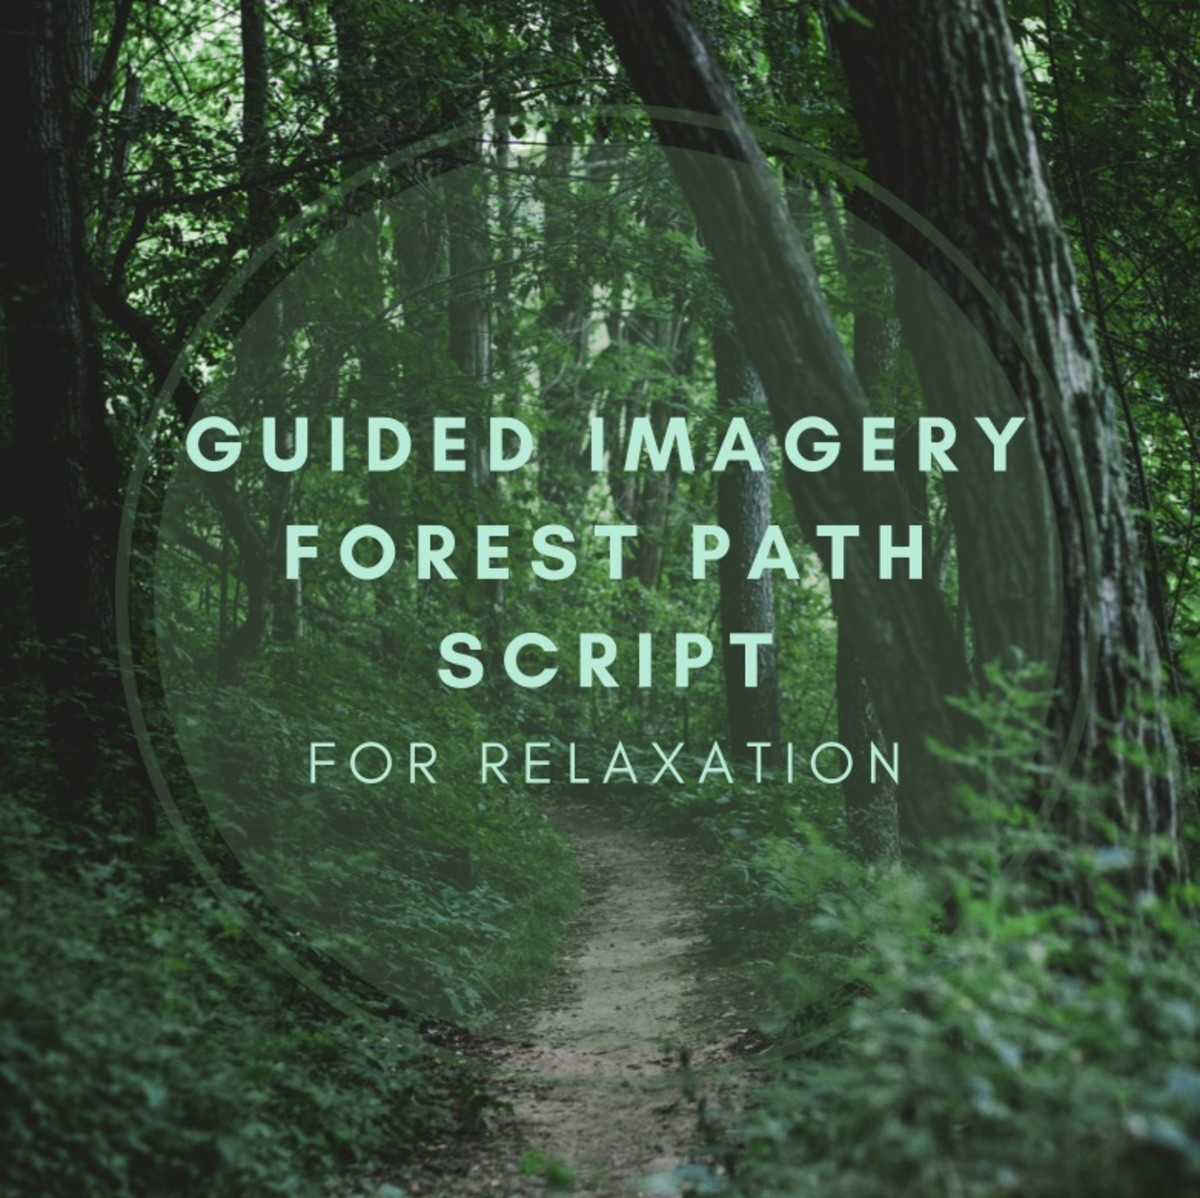 picture regarding Free Printable Guided Imagery Scripts named Guided Imagery Forest Way Script for Rest RemedyGrove